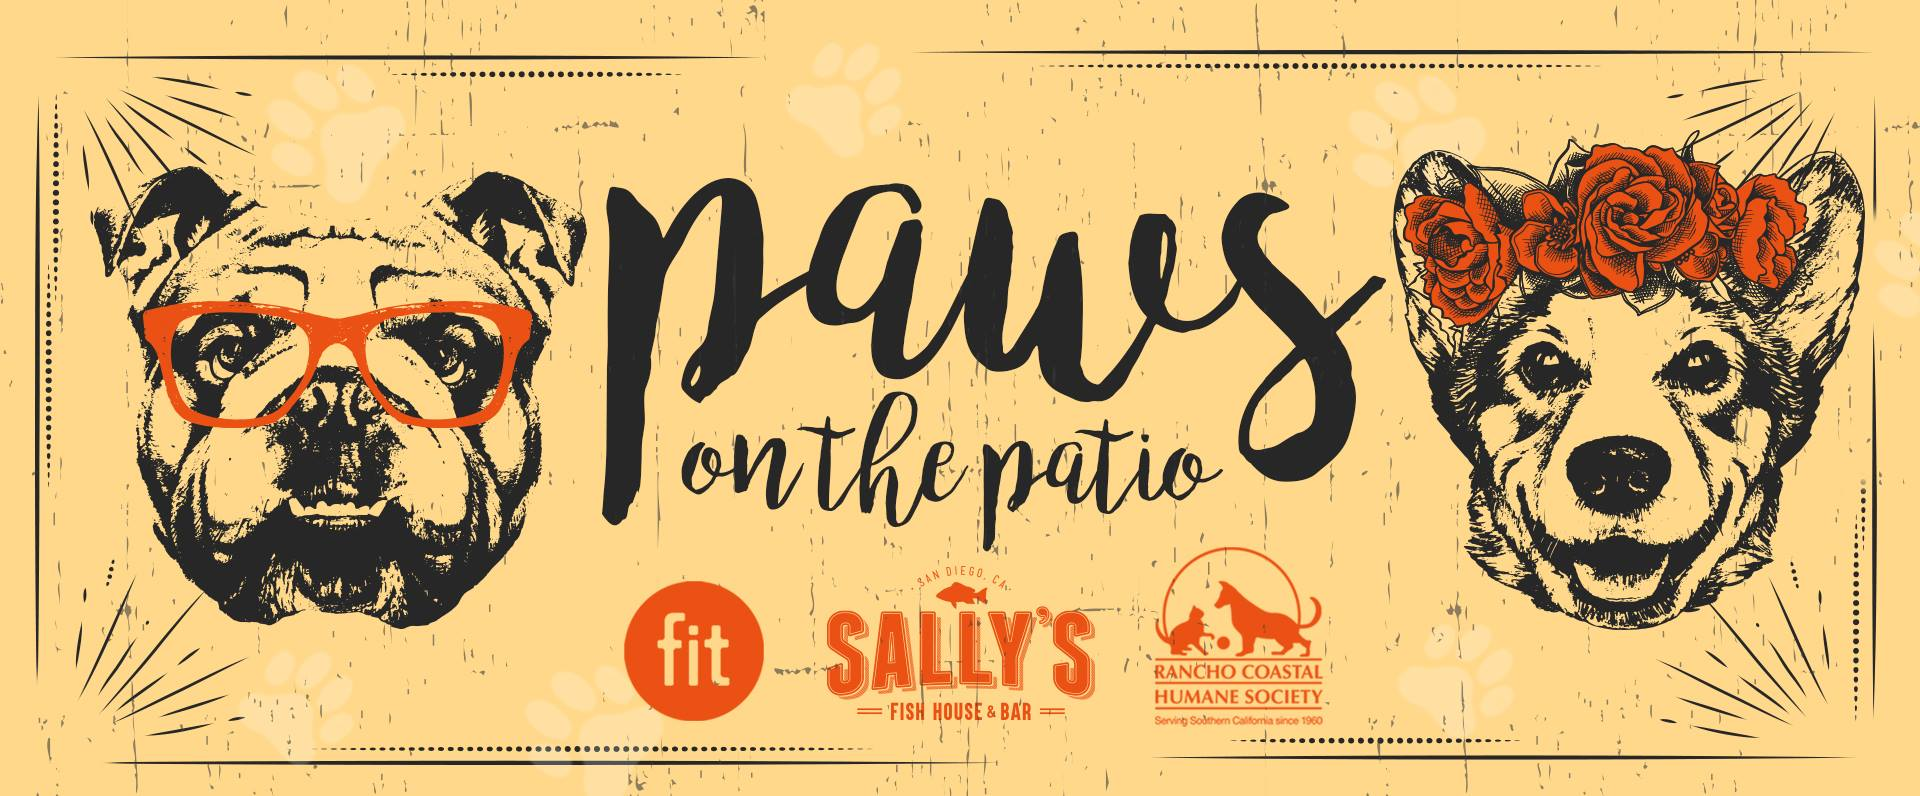 Paws on the patio sunday june 10 2018 2 p m to 5 p m for Sally s fish house bar